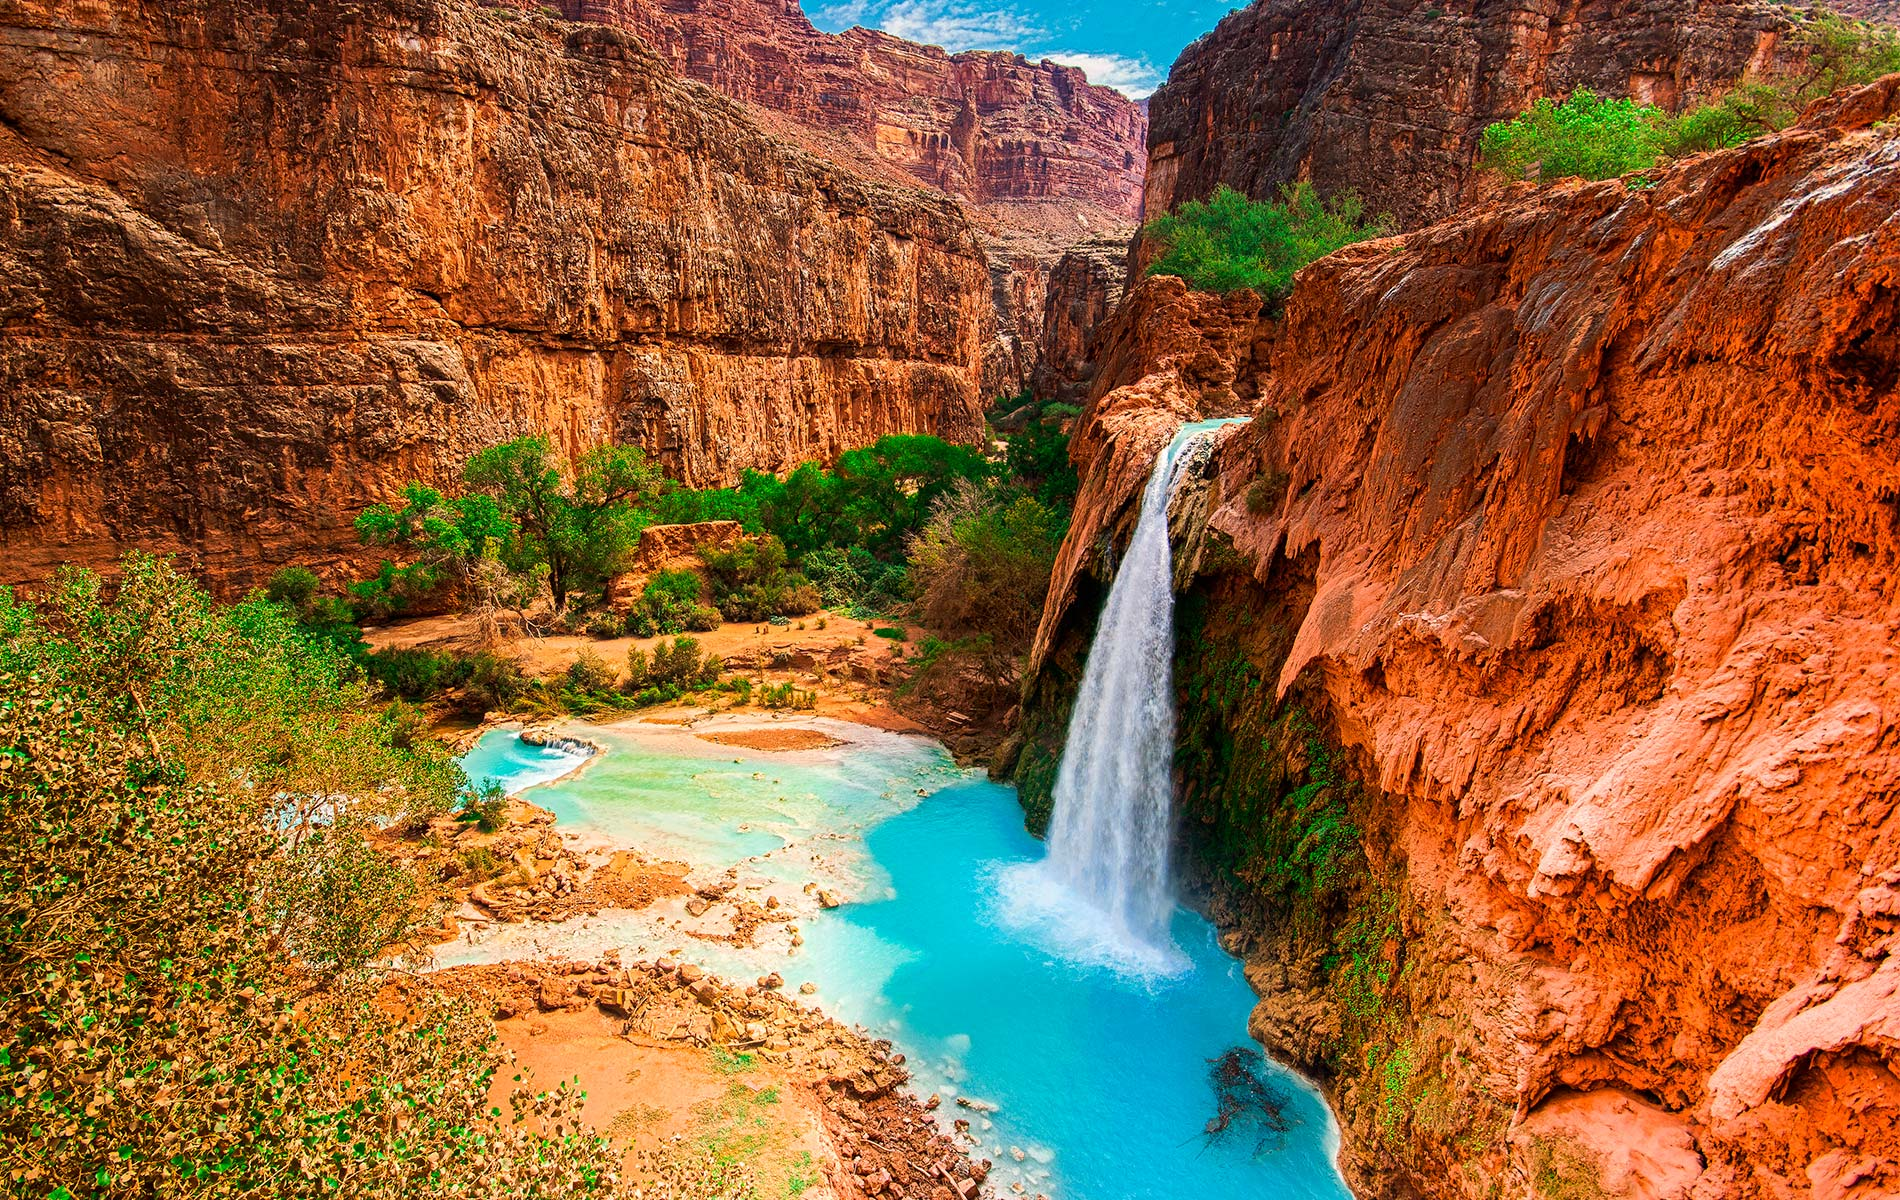 Havasu Falls located within the Havasupai reservation in the Grand Canyon